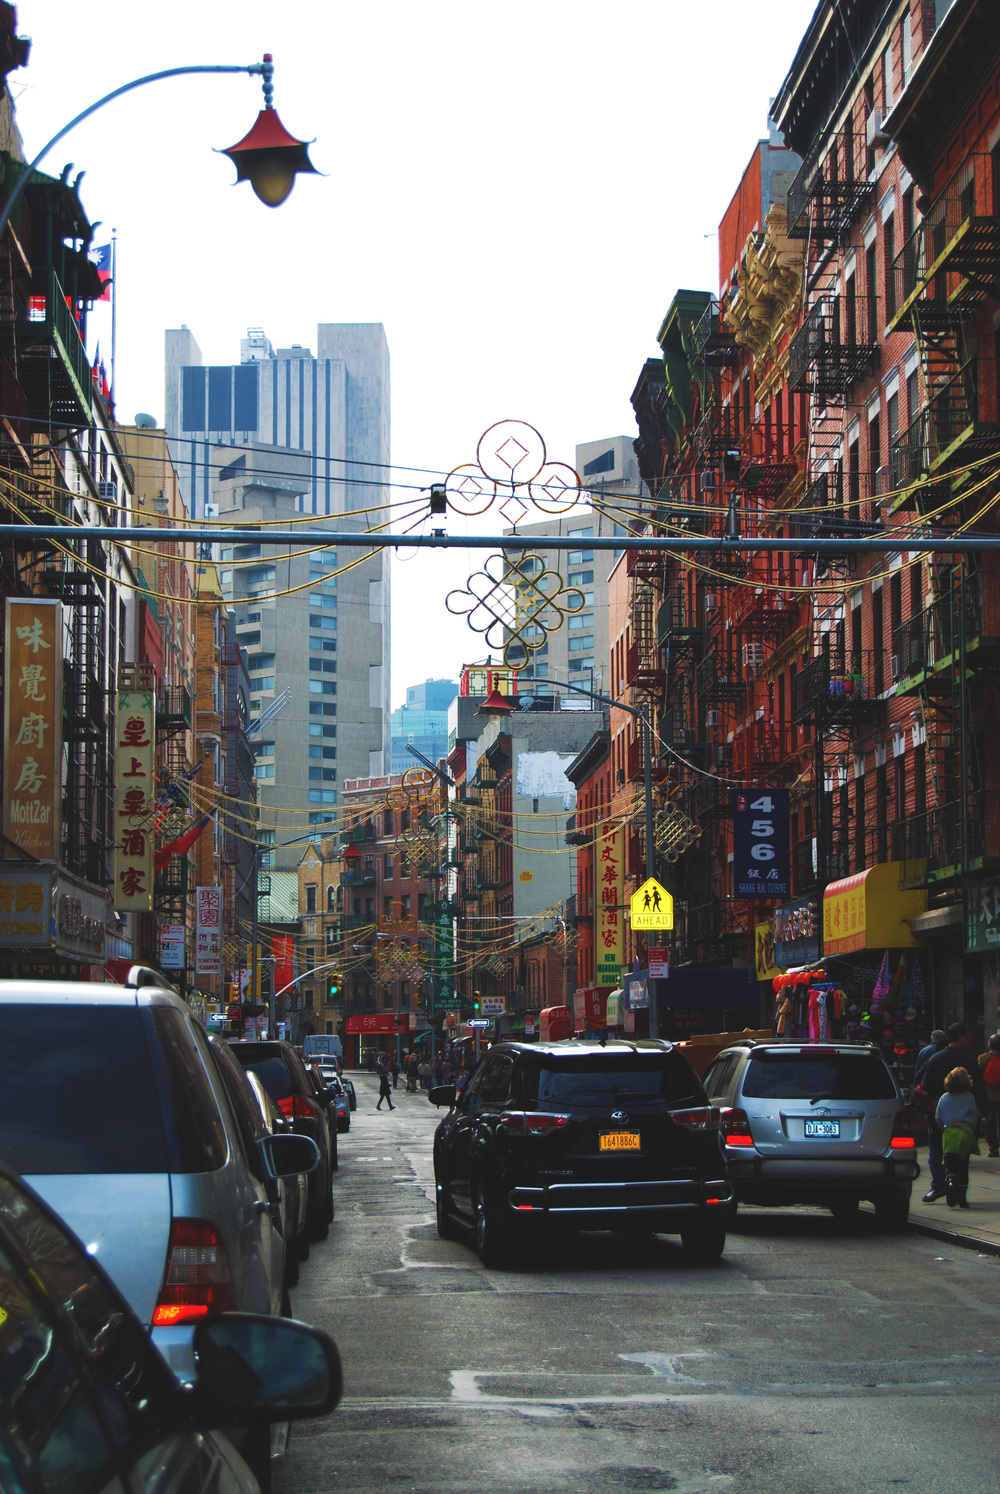 Chinatown is so colorful